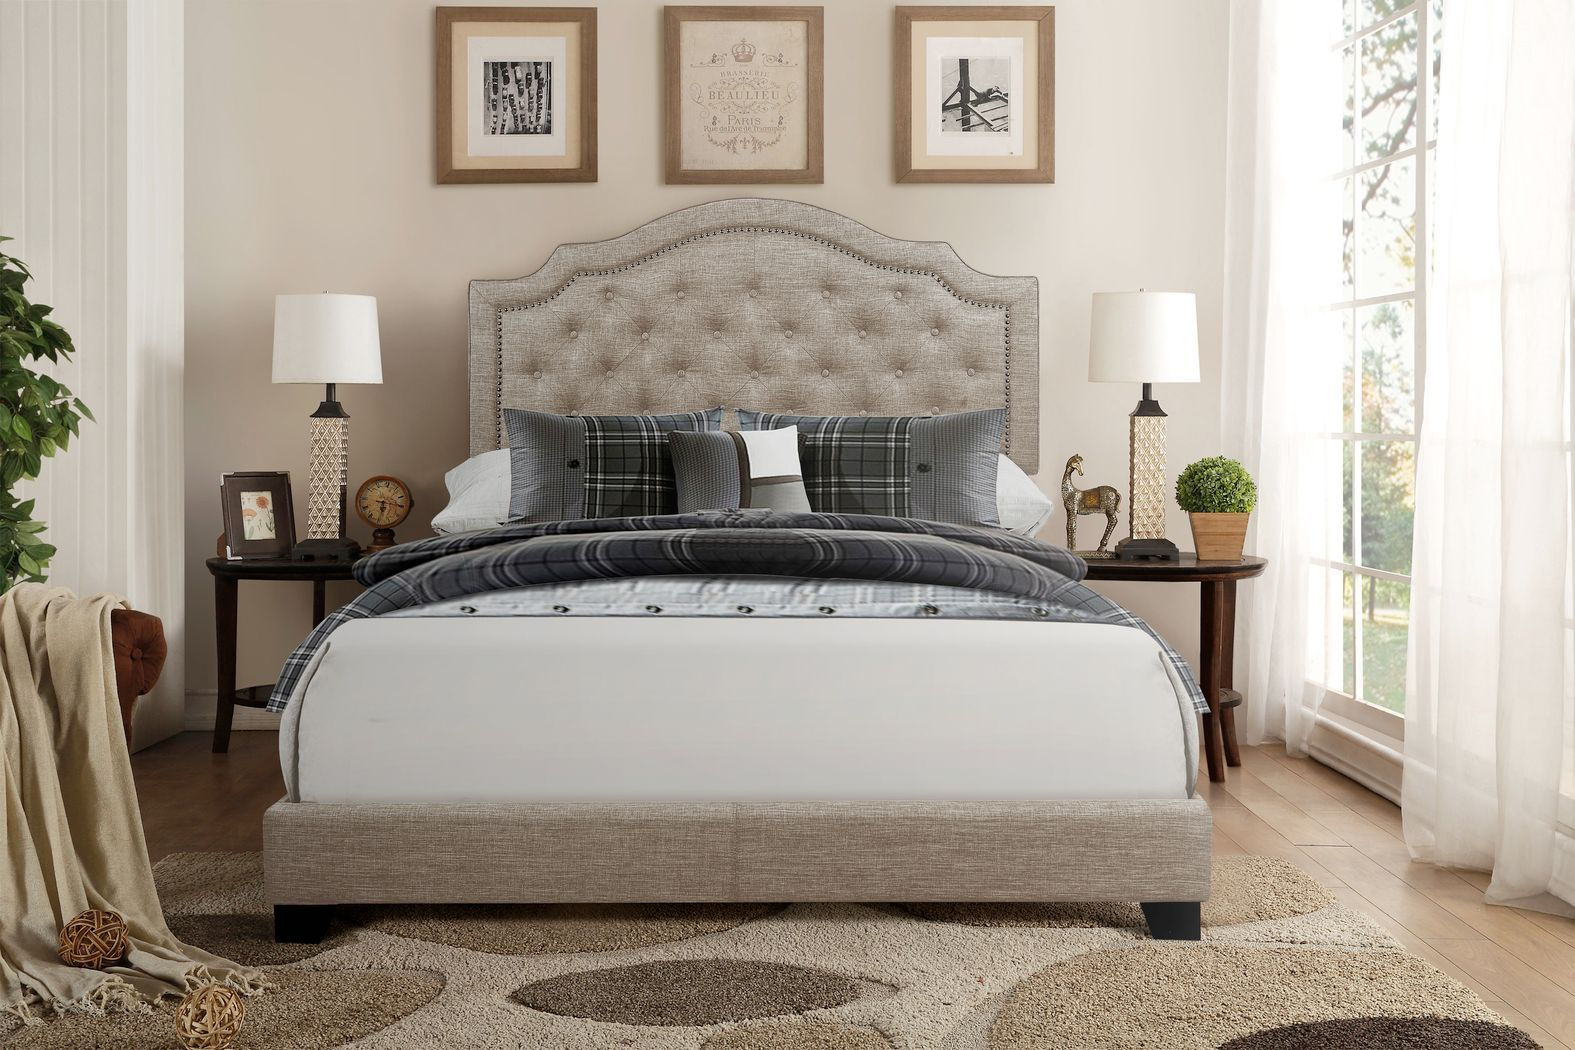 Best Bowerton Beige Queen Upholstered Bed In 2020 Upholstered 640 x 480